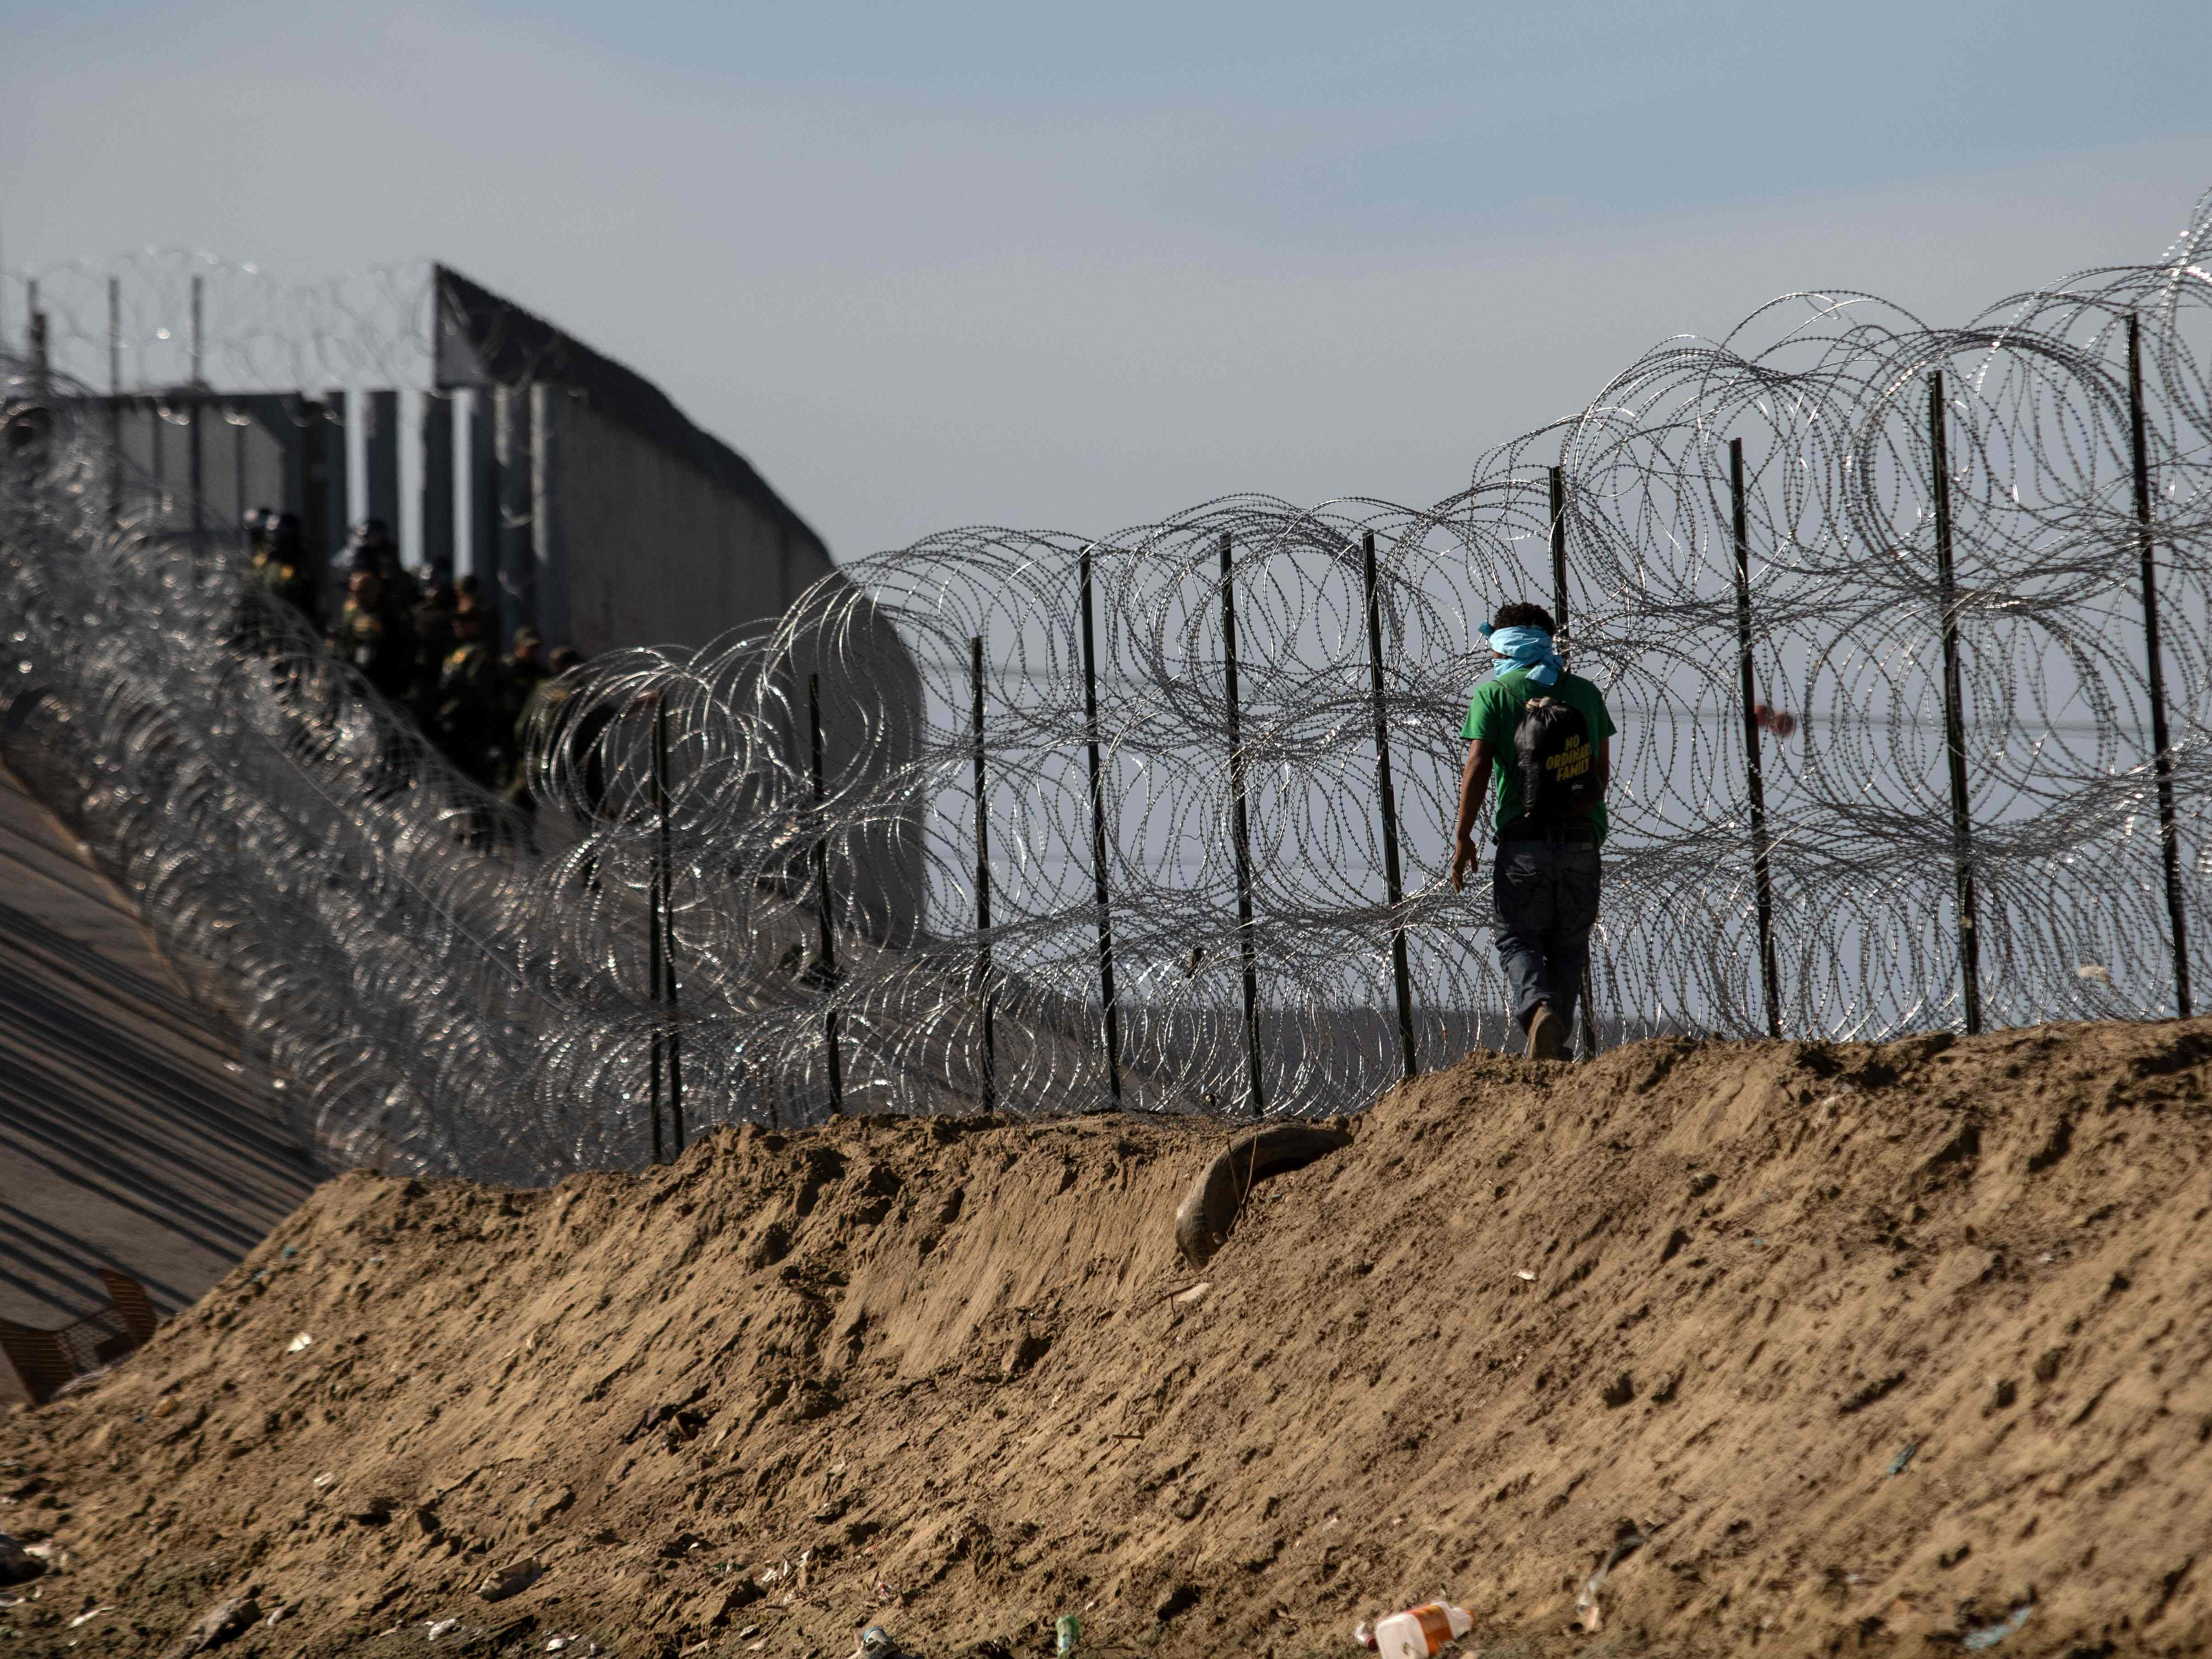 A man traveling with a caravan of Central American migrants walks along a barricade set by the U.S. Border Patrol along the Tijuana River, near the El Chaparral border crossing in Tijuana, Mexico, on Nov. 25, 2018.